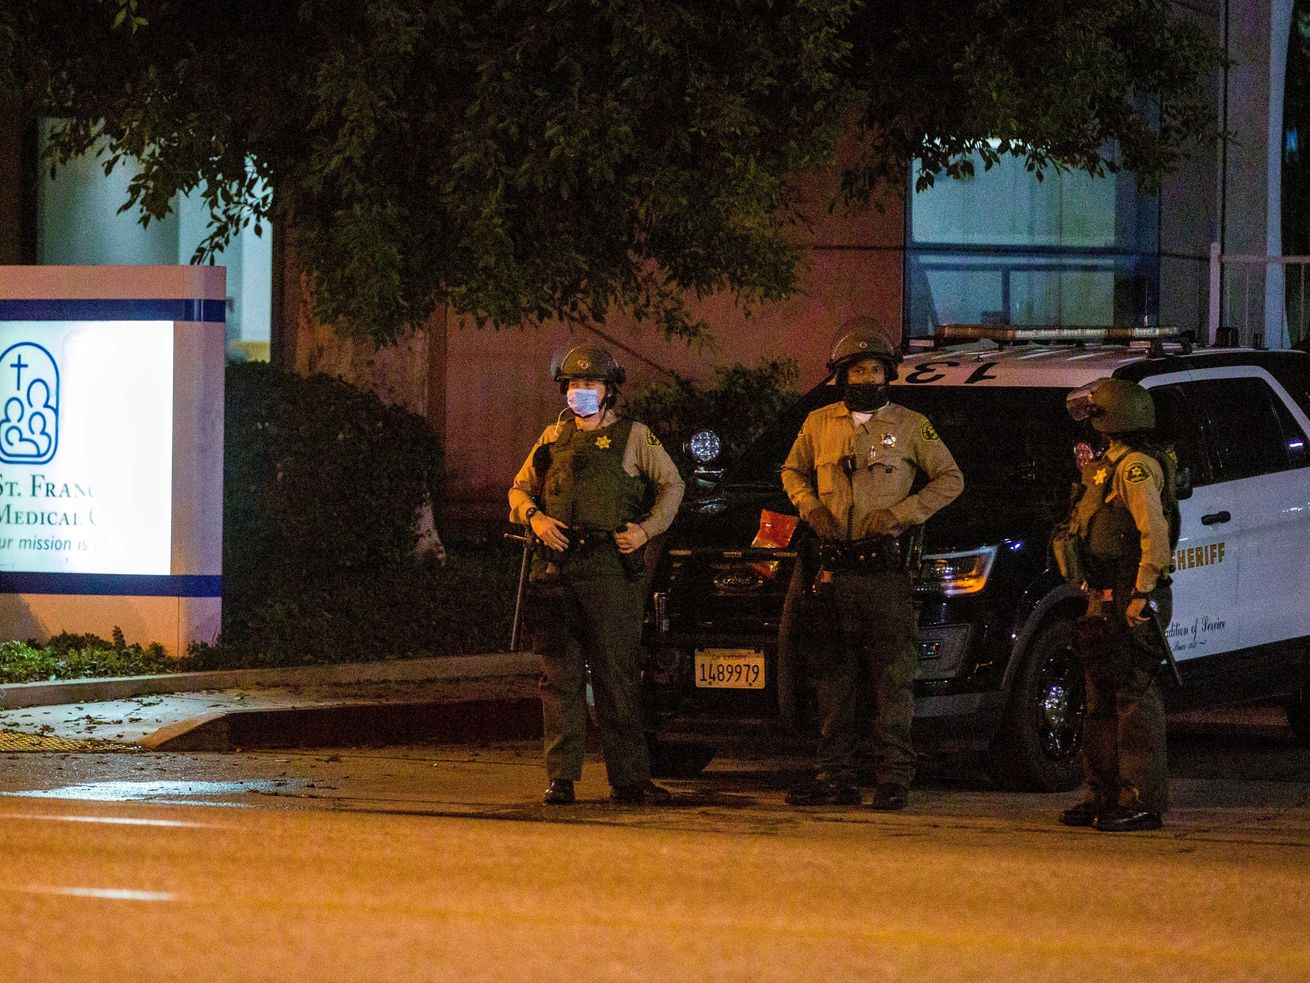 In our opinion: Compton officer shooting should not be political